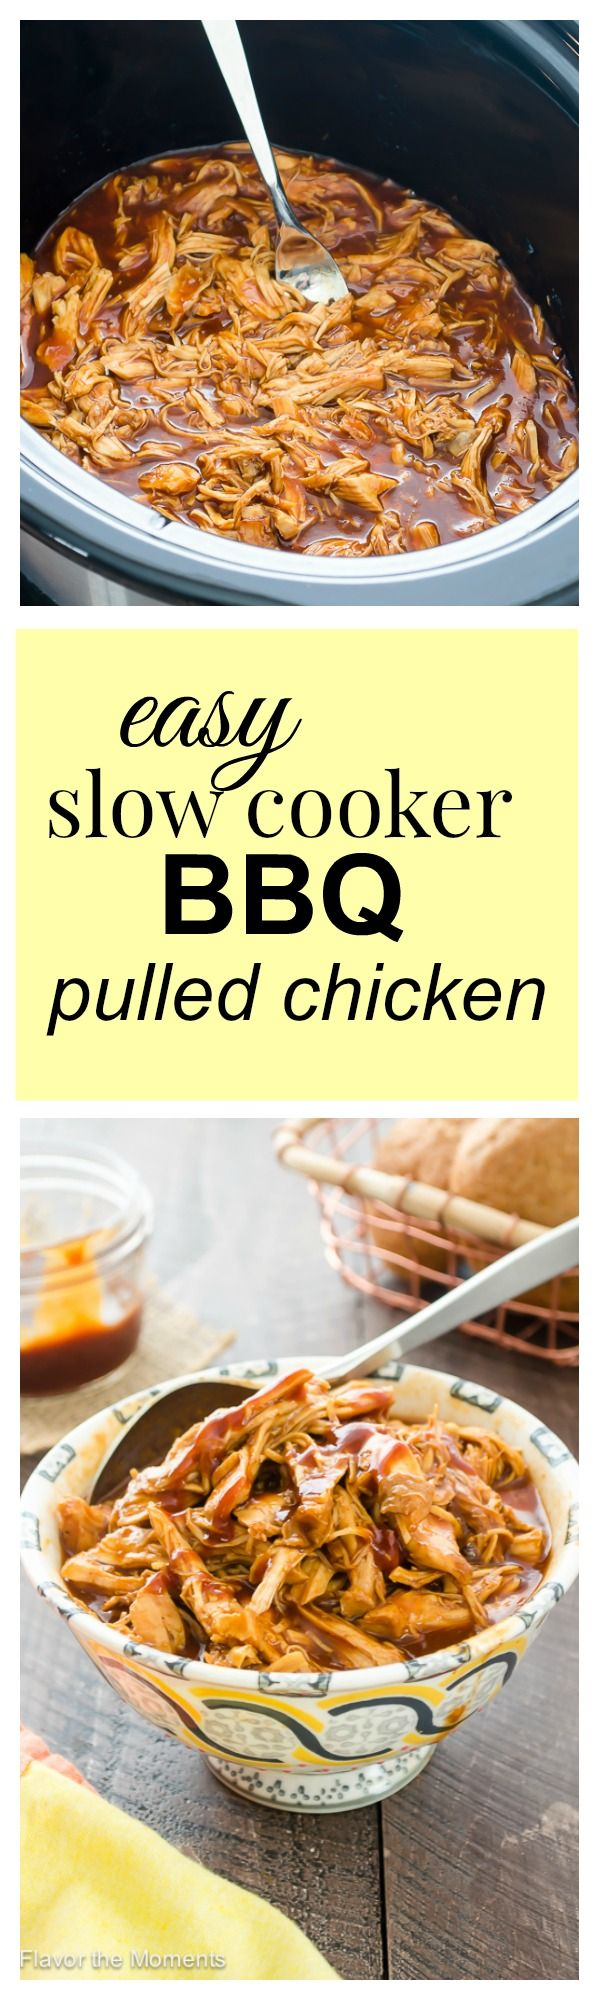 Easy Slow Cooker BBQ Pulled Chicken | flavorthemoments.com